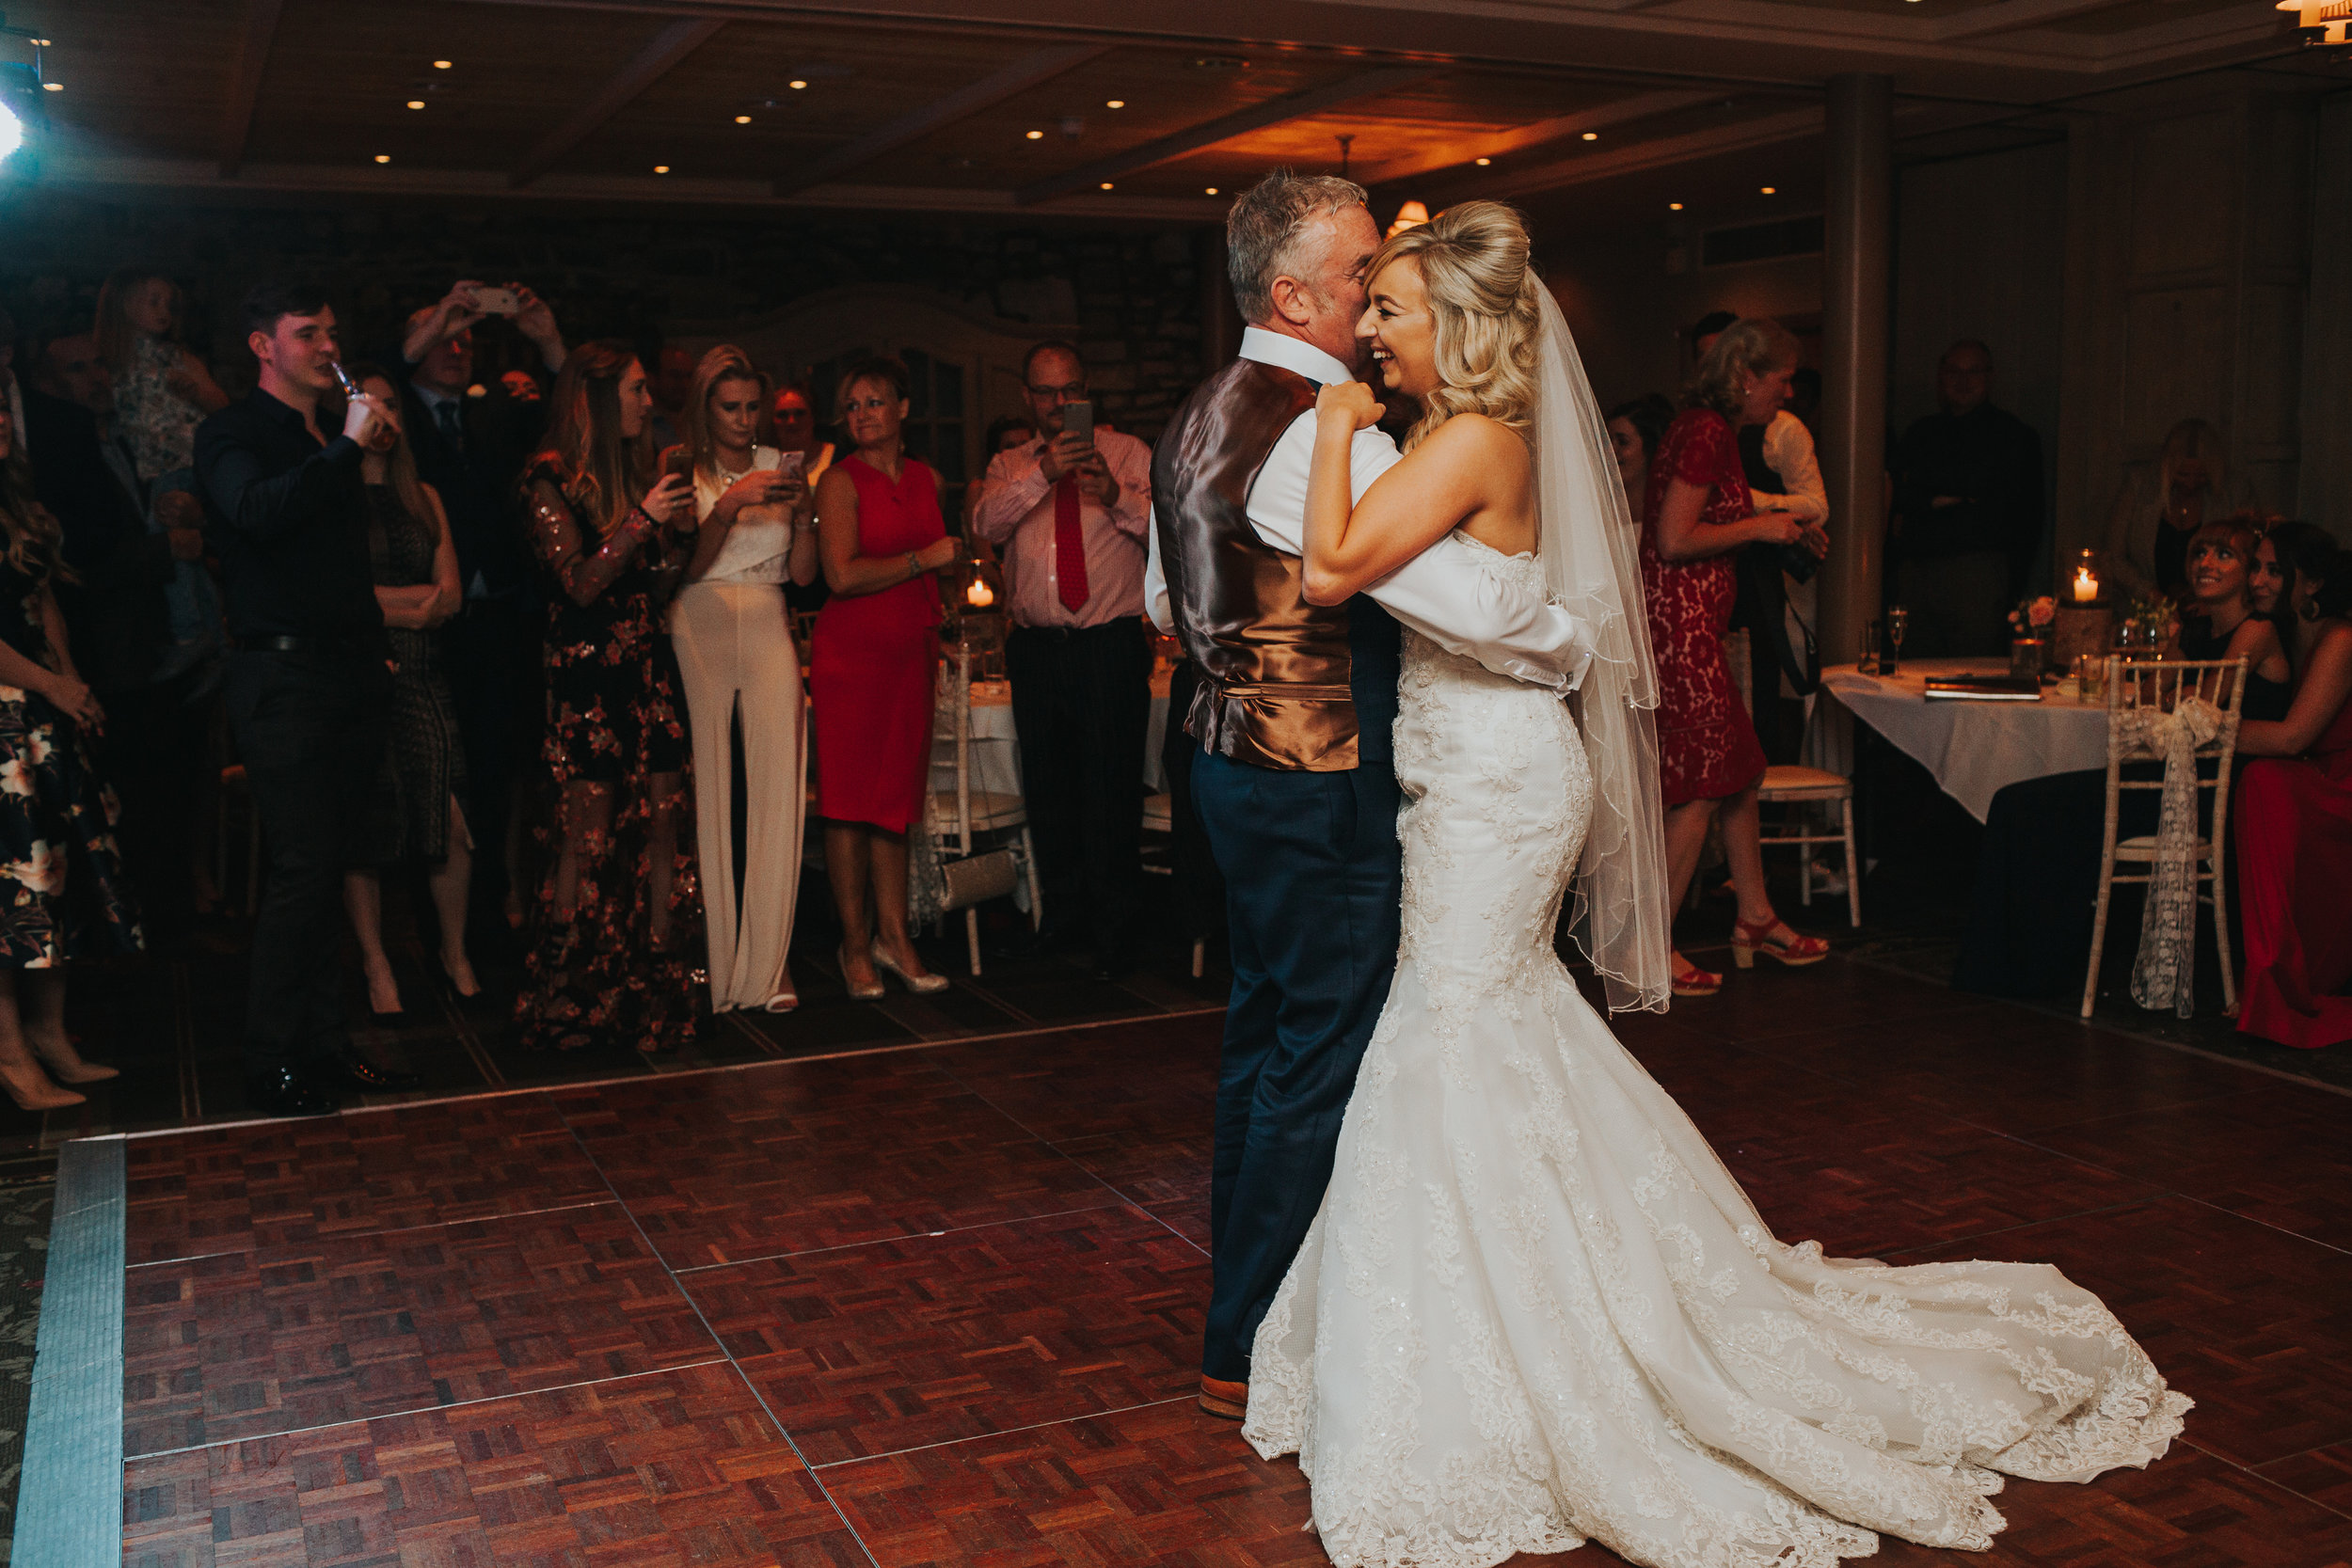 Bride begins to cry while dancing with her Dad.